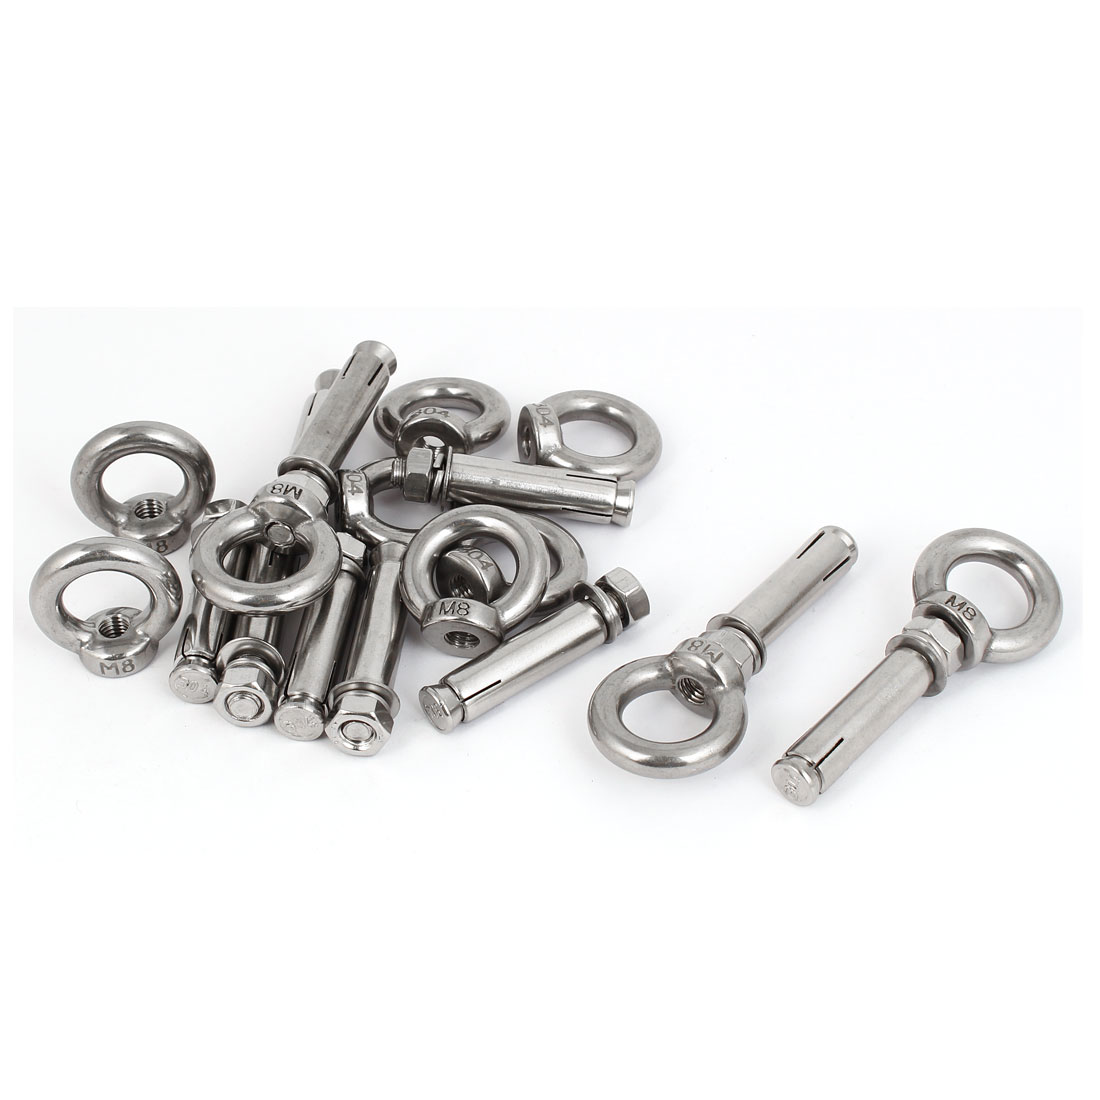 M8x60mm Expansion Screws Closed Hook Anchor Bolts 10pcs for Wall Concrete Brick